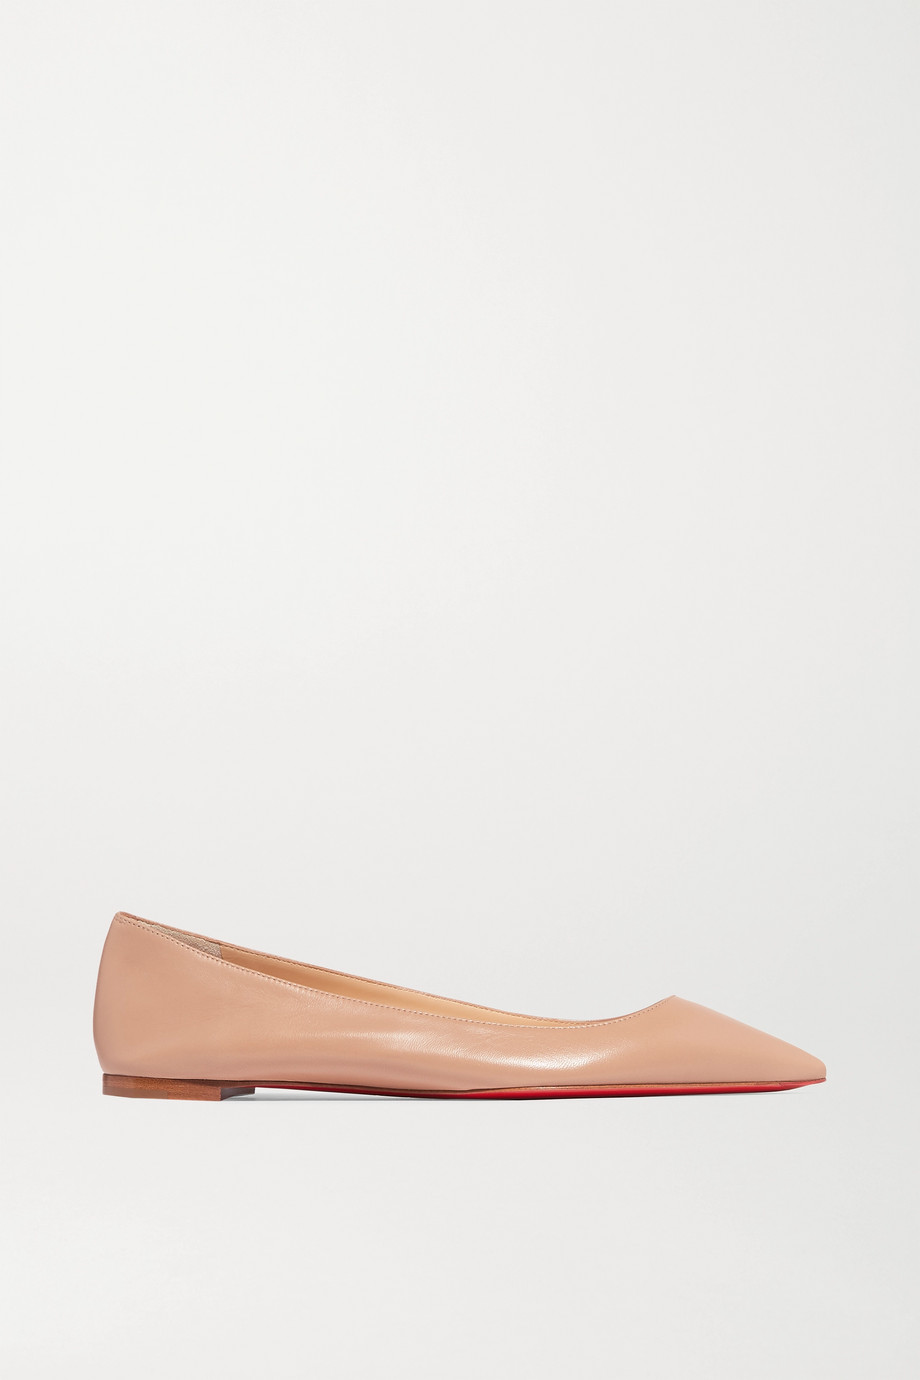 CHRISTIAN LOUBOUTIN Ballalla leather point-toe flats